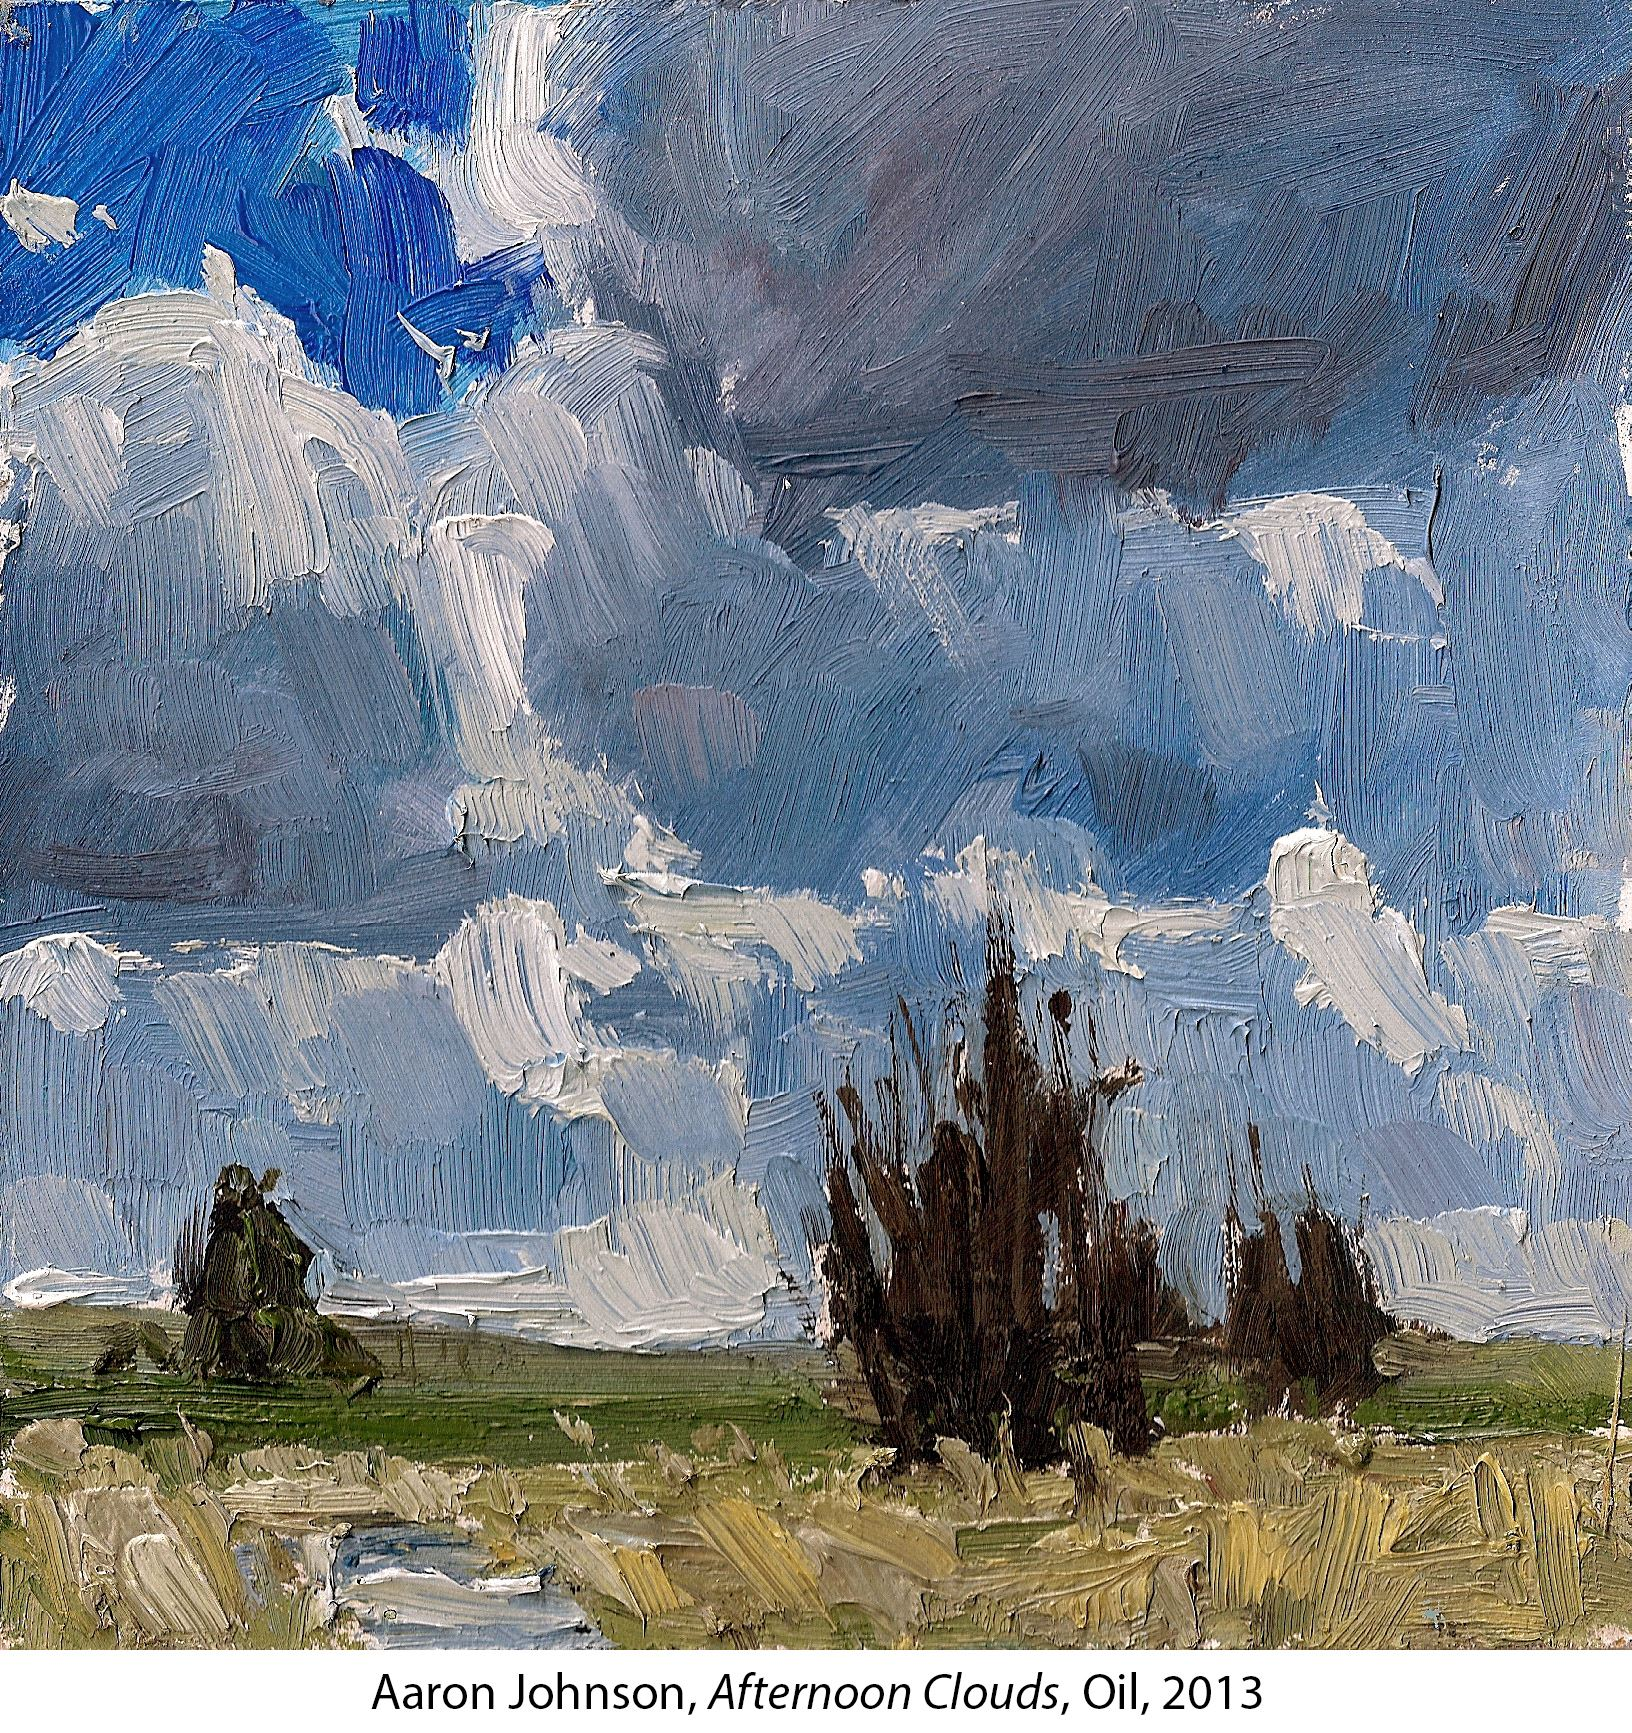 Oil painting of a landscape with blue sky with clouds